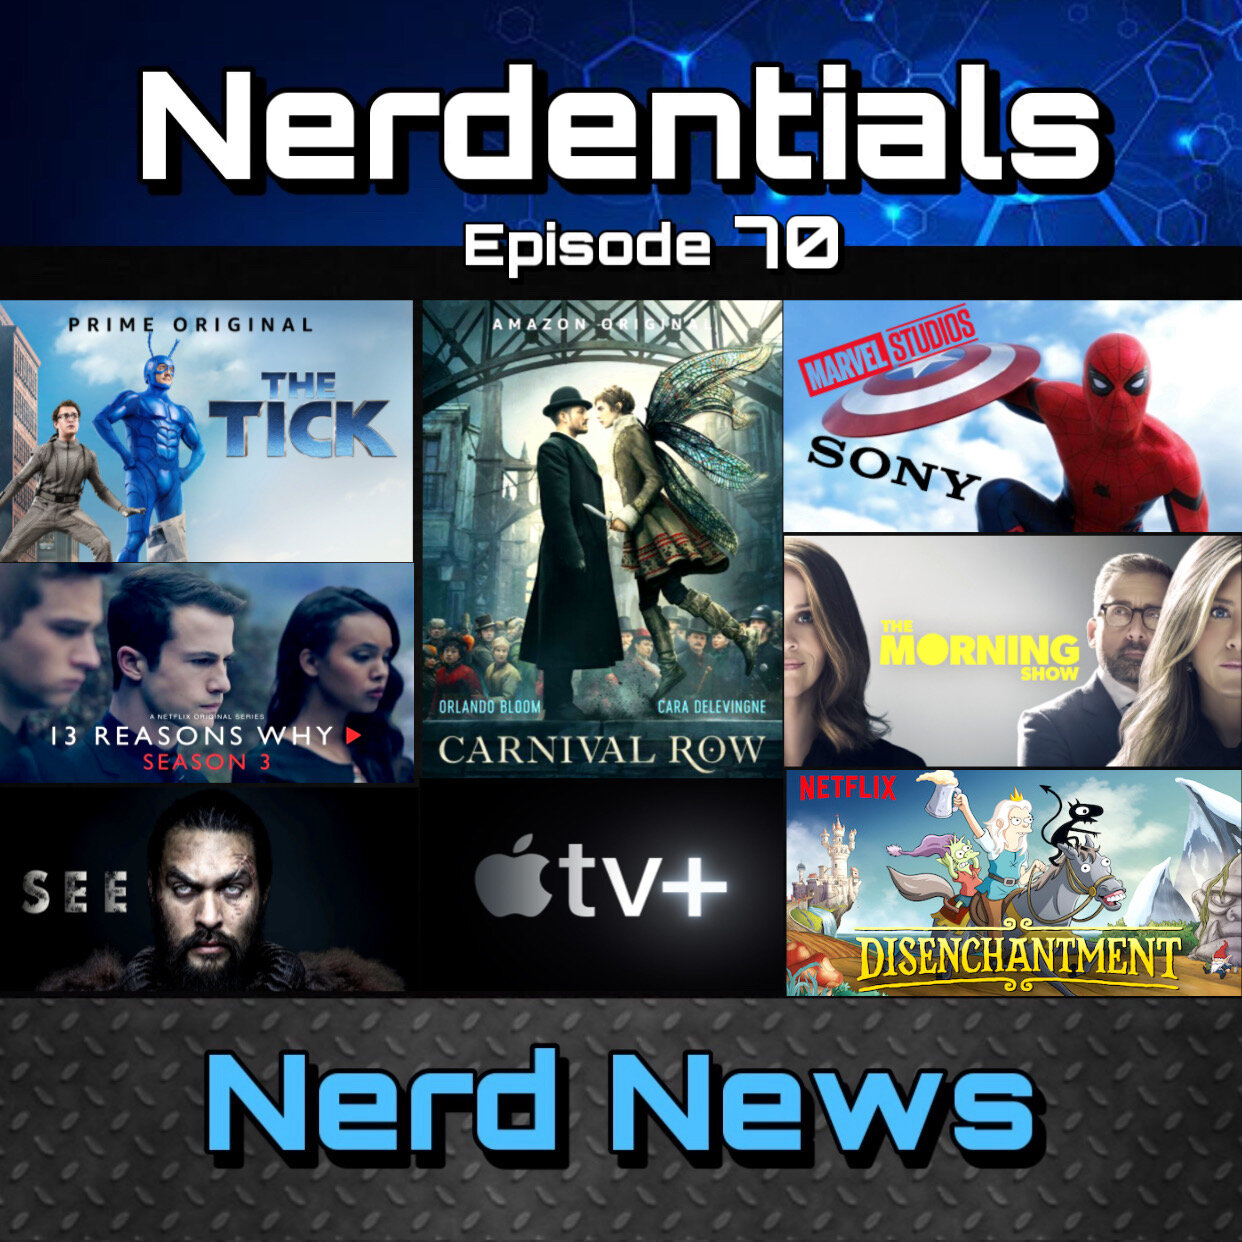 - Welcome to Nerdentials! Your weekly dose of the nerdy essentials. Covering Film, TV, Video Games and Comics.This week your fellow nerds Joe, Matt, Nick and Lynn cover Kick things off with some debate and discussion over Spider-Man returning to the MCU!Then we breakdown every upcoming release and details regarding Apple's new streaming service Apple TV+After that its time for This Week in Review....Joe, Matt and Nick give you our thoughts and feelings on Season 3 of the Netflix Original series, !3 Reasons Why.Nick runs down his review of Netflix's Disenchantment....followed by Joe's Review of another Netflix Original Series, Unbelievable.Rounding out the show Nick and Joe dive in and review 2 Amazon Prim original series. Seasons 1 and 2 of The Tick...then the New high fanstasy adventure, Carnival Row.